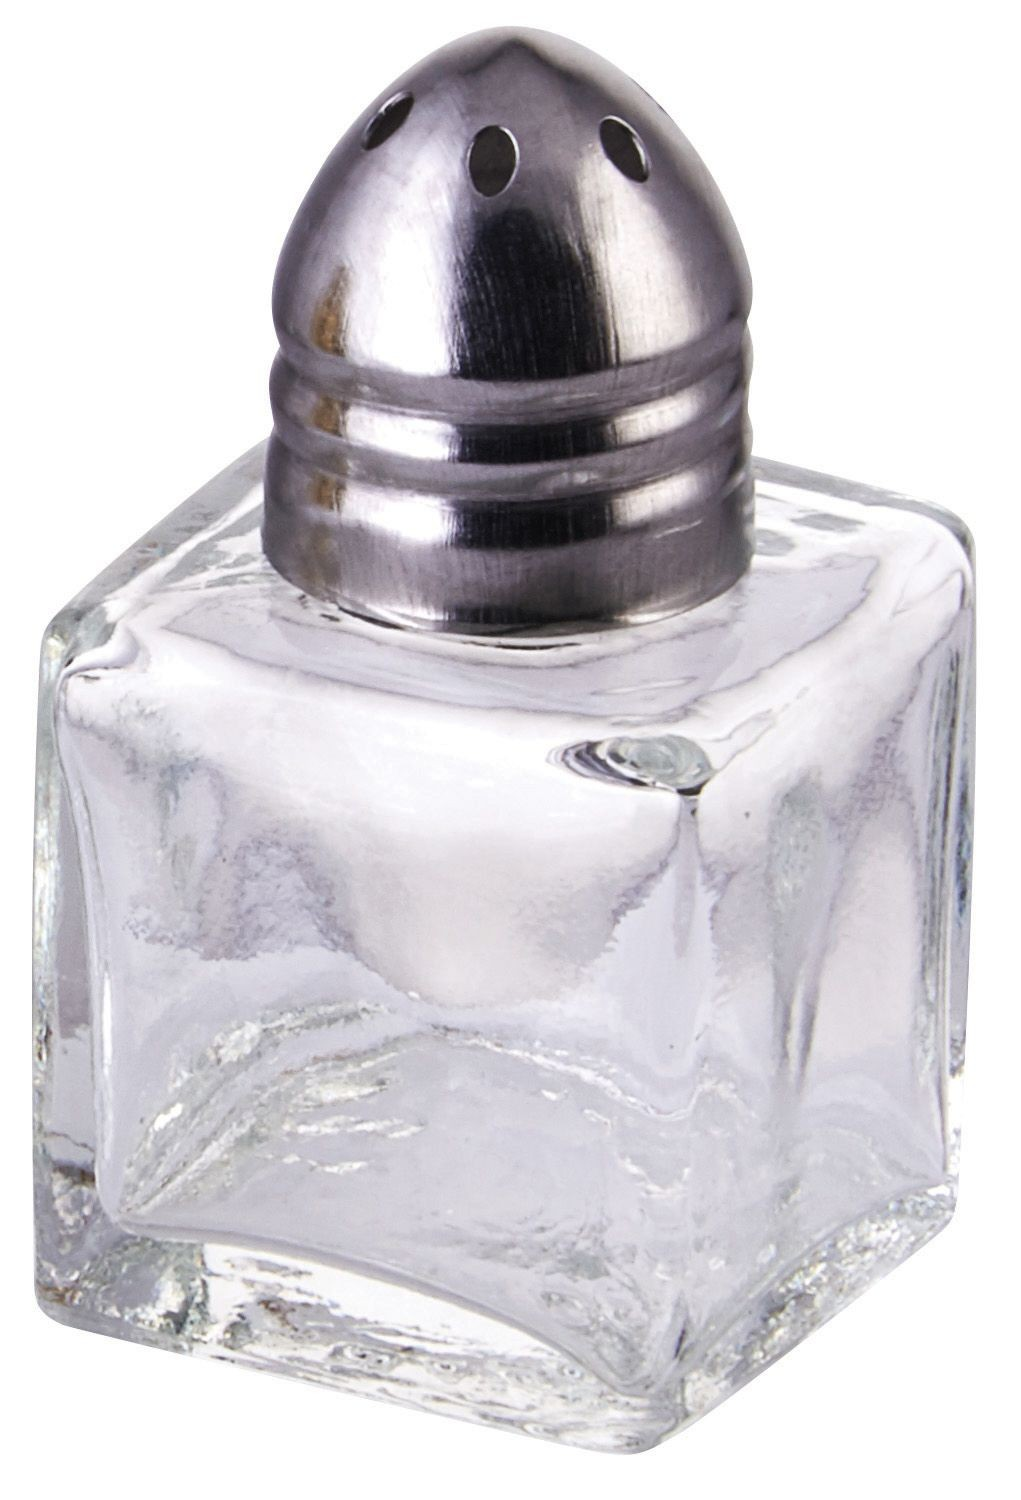 Square Shaker W/Chrome Plated Top, 1/2Oz, (12Pcs/Color Box)